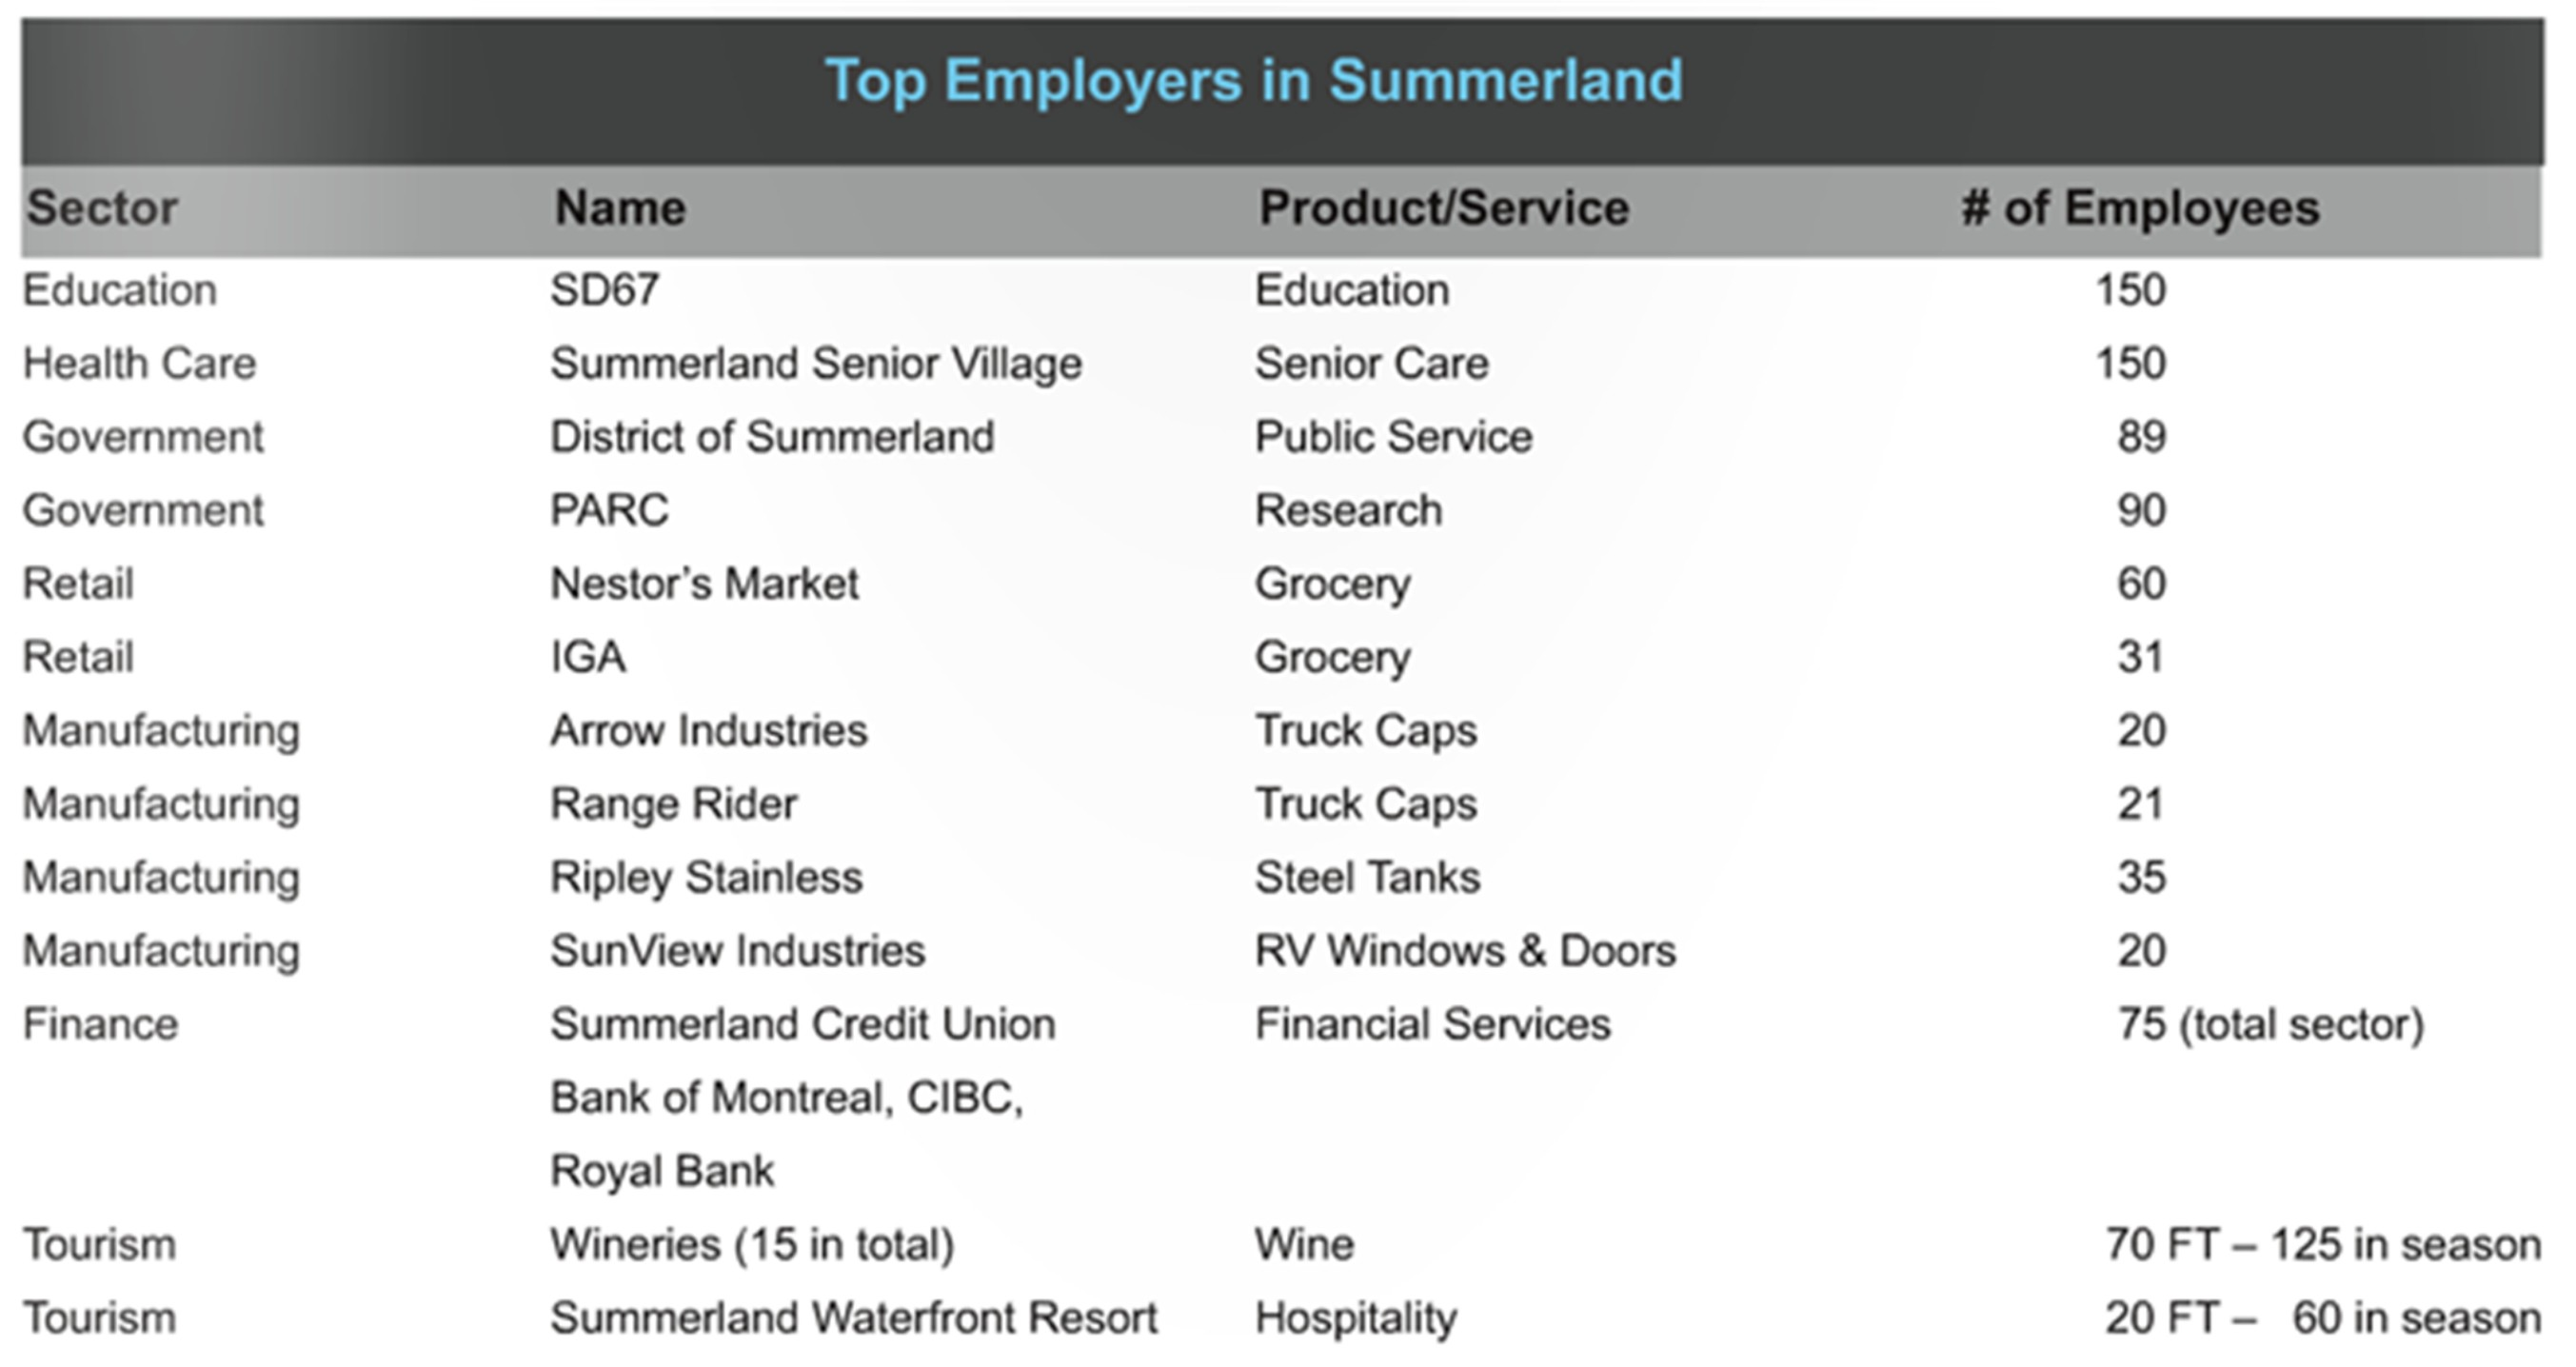 Top Employers in Summerland